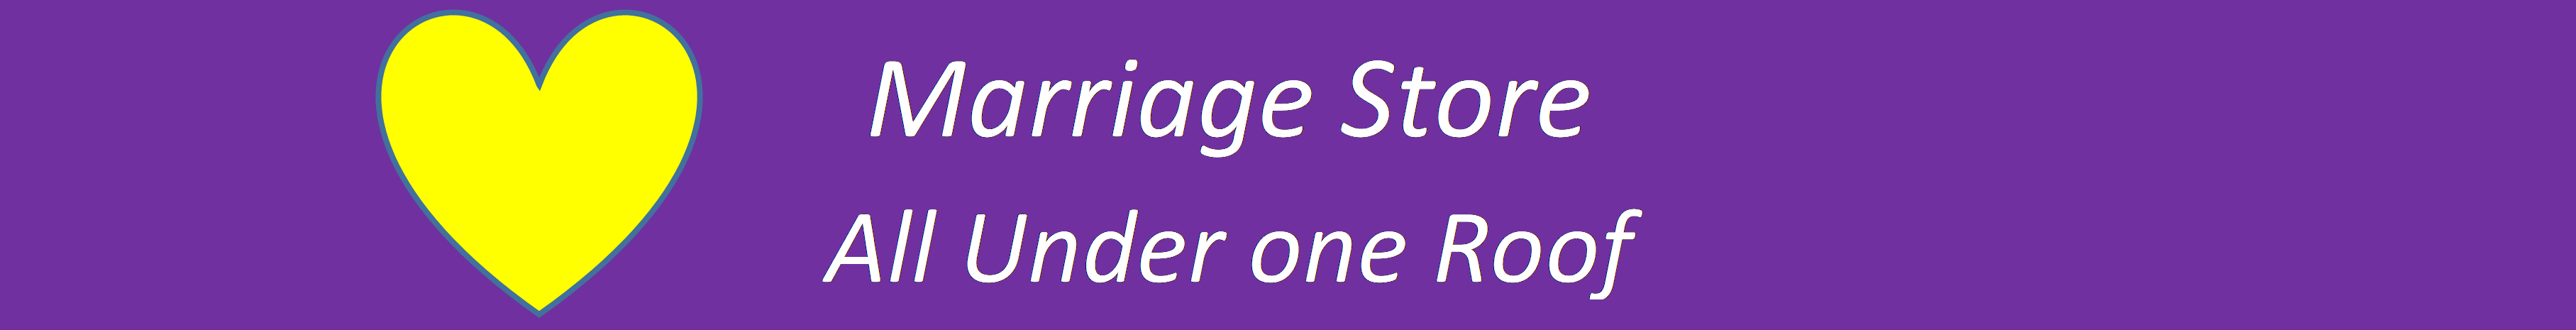 Marriage Store